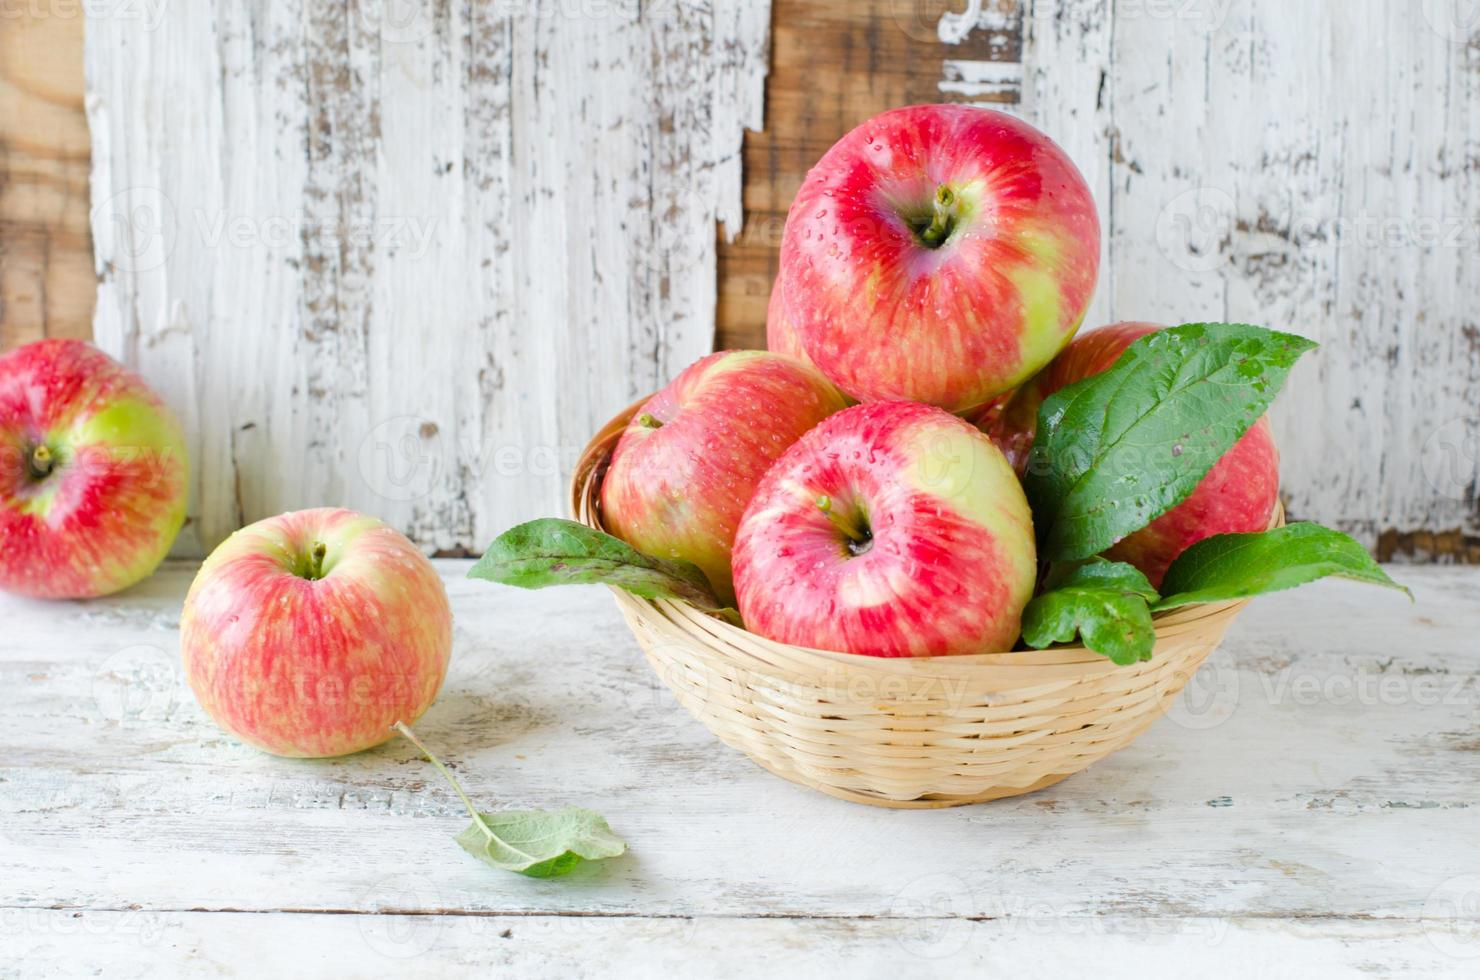 Red apples in a basket photo